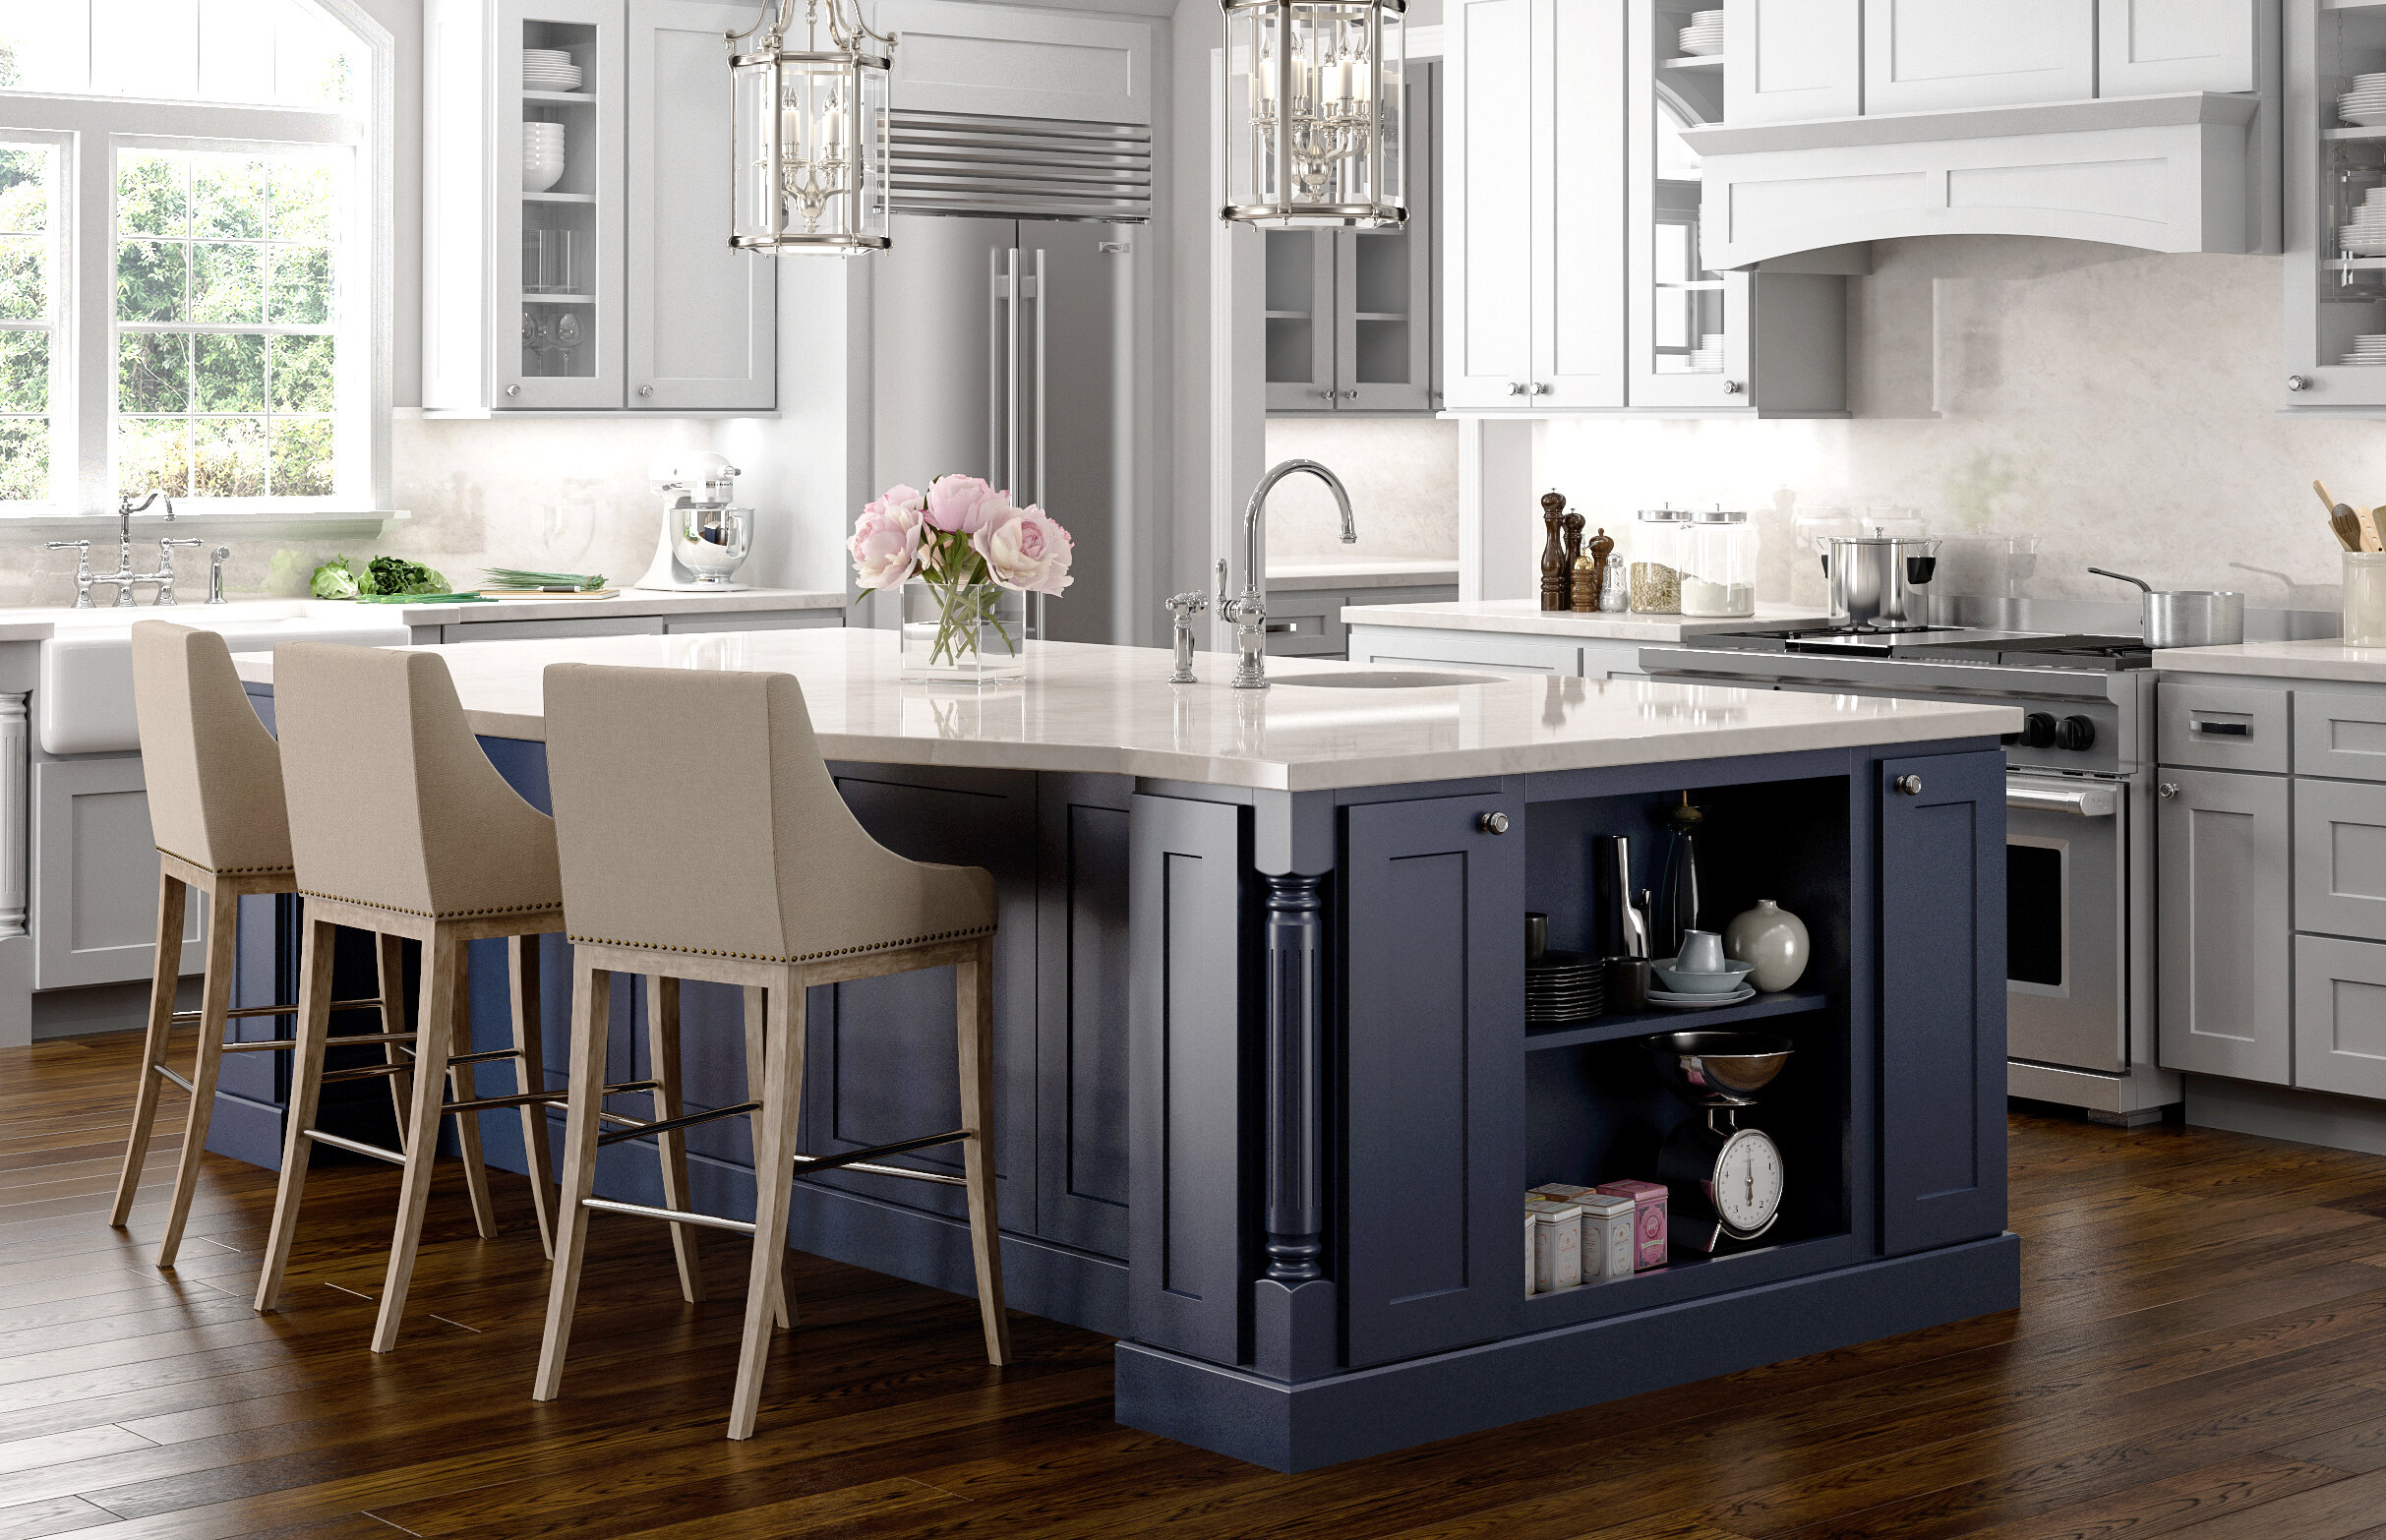 Cabinets Up To 40 Less Than Big Box Stores Free Measure Estimates Renderings Home Remodeling General Contractor Commercial Residential Services